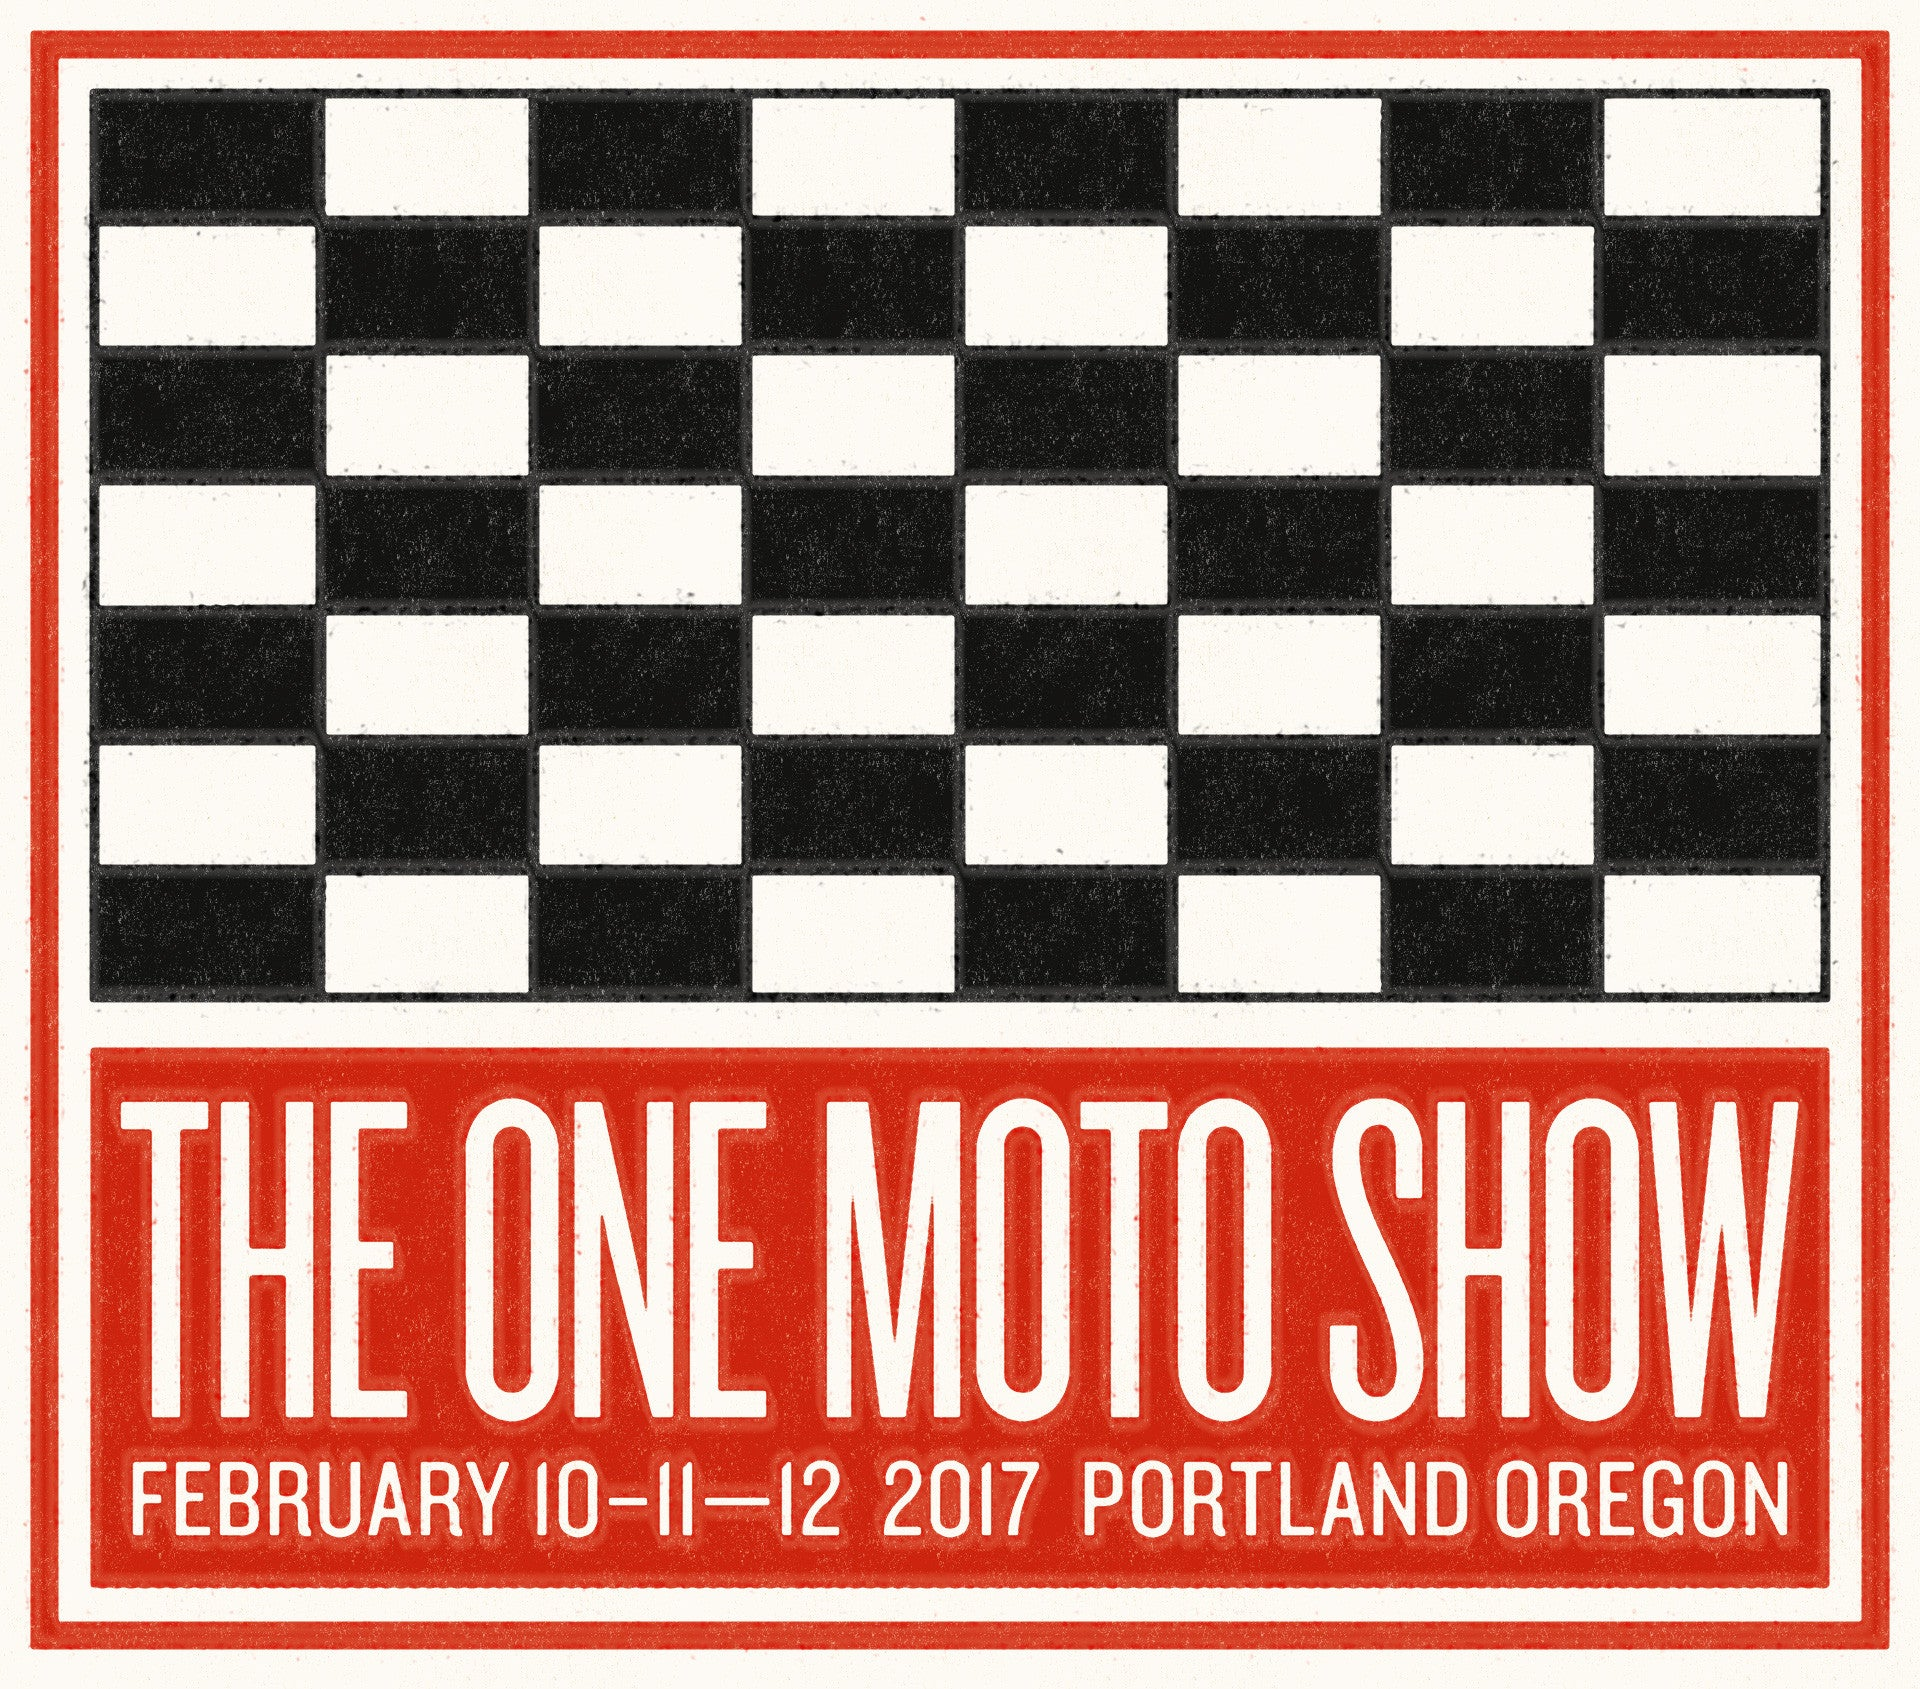 THE ONE MOTORCYCLE SHOW DATES ARE HERE!!